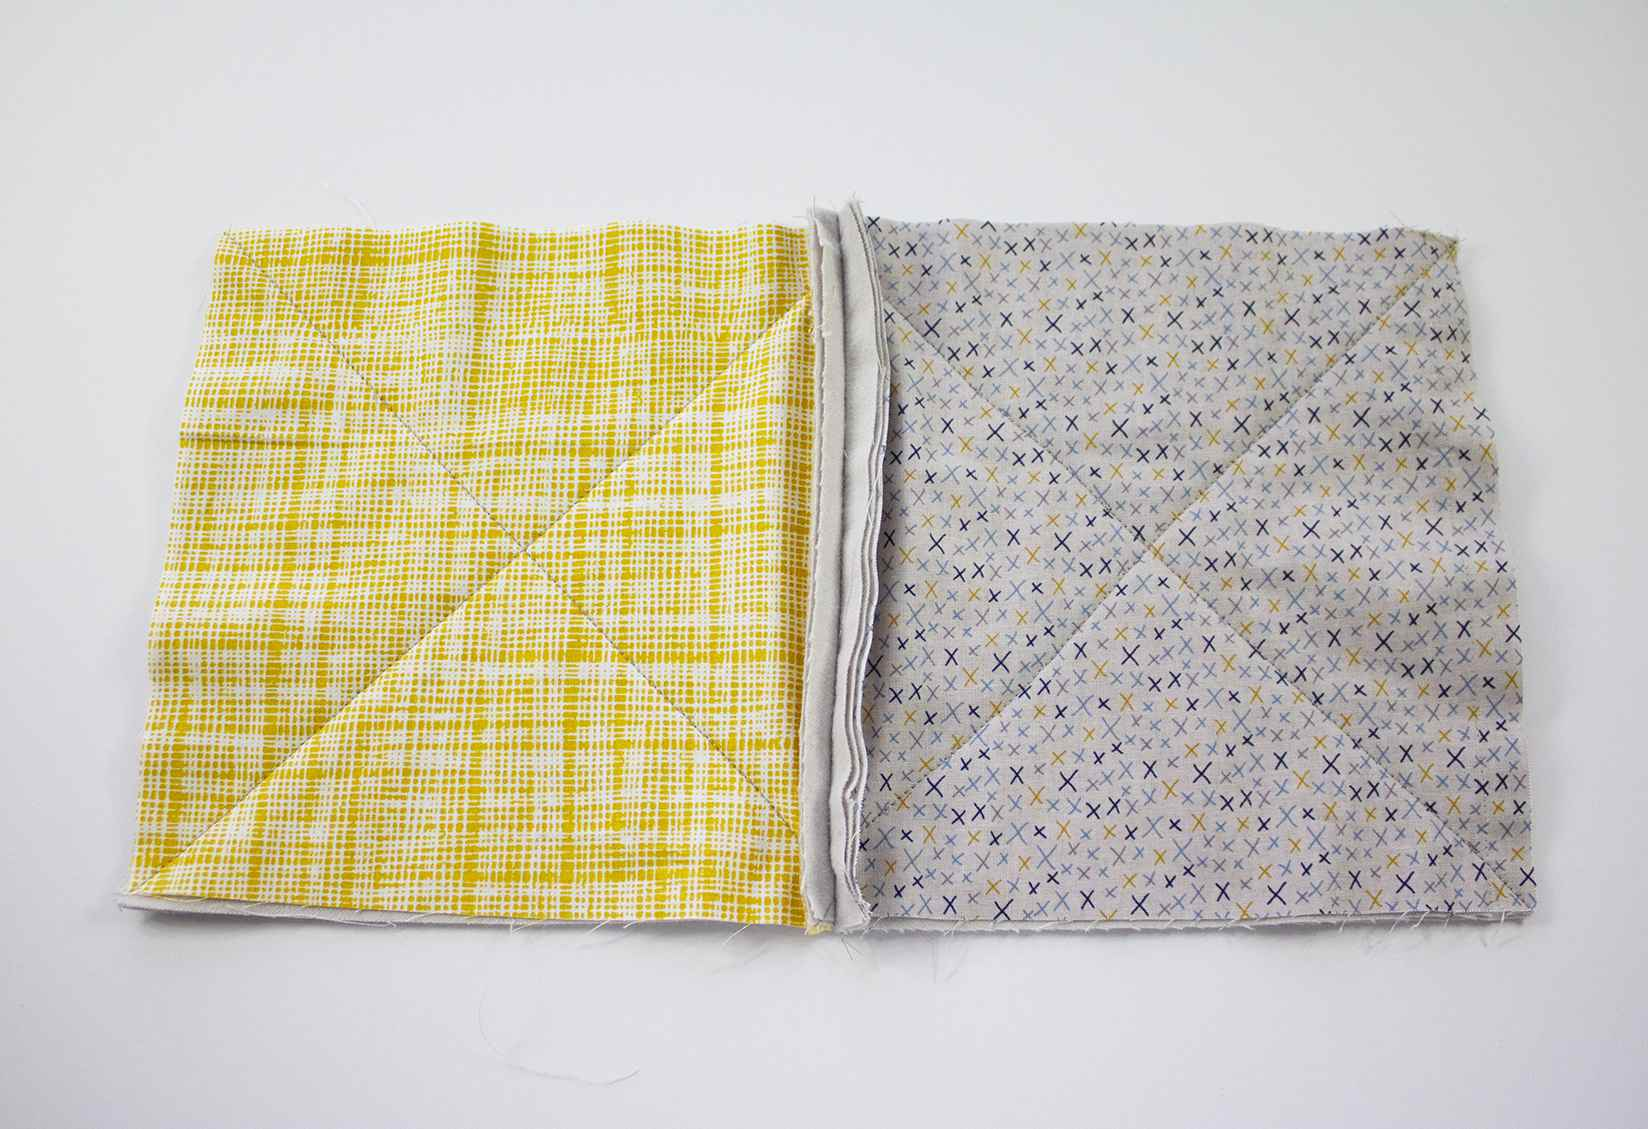 Two quilt stacks sewn together